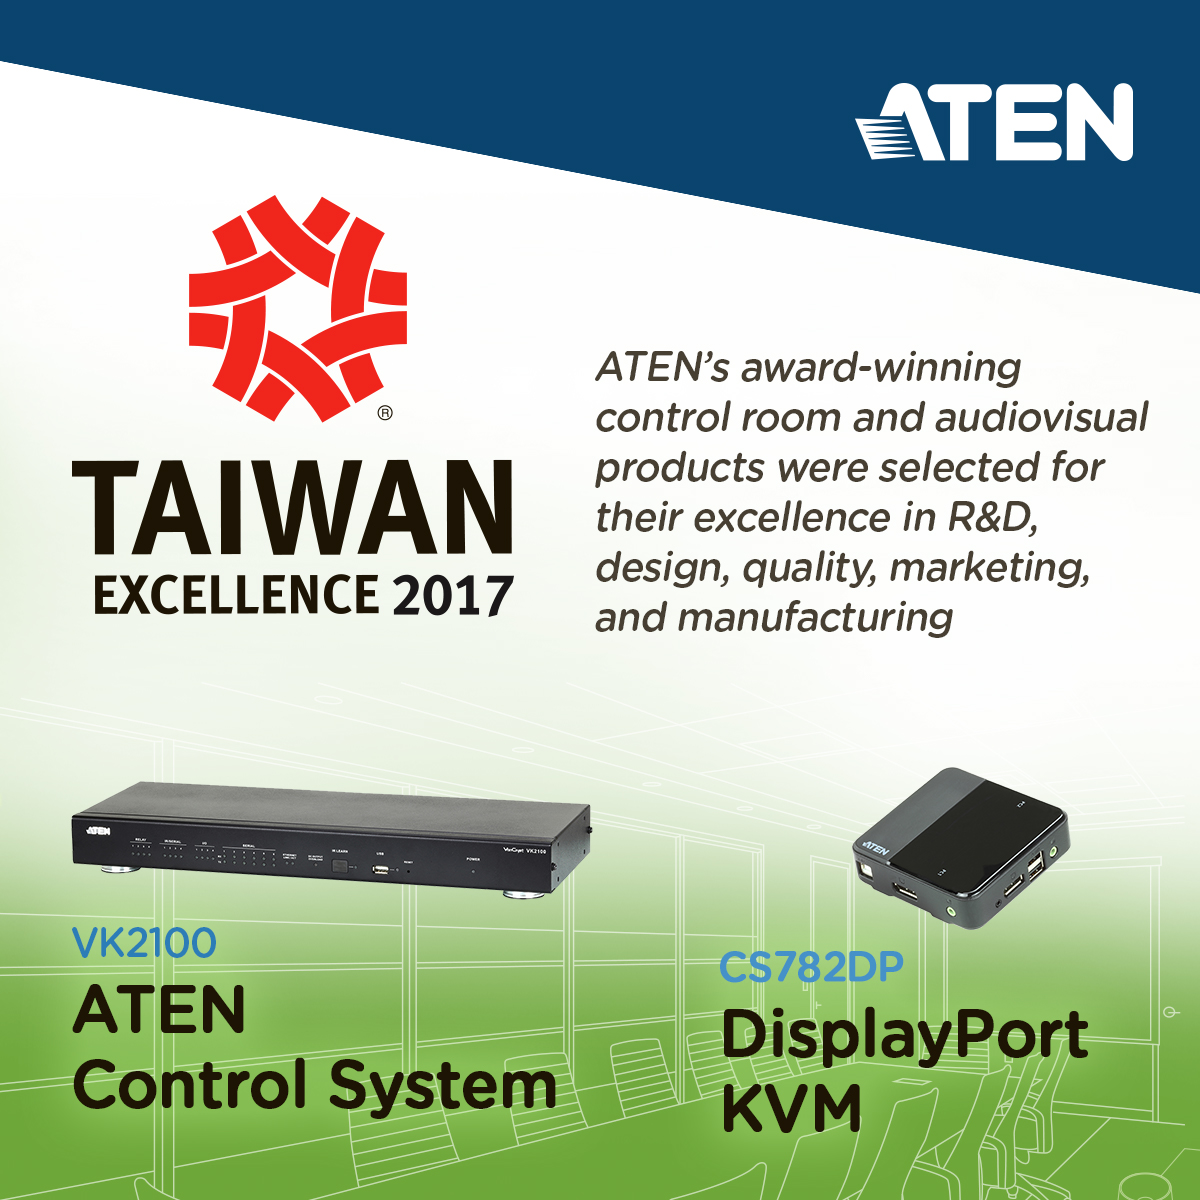 ATEN CS782DP DisplayPort KVM and VK2100 ATEN Control System Box win 2017 Taiwan Excellence Awards